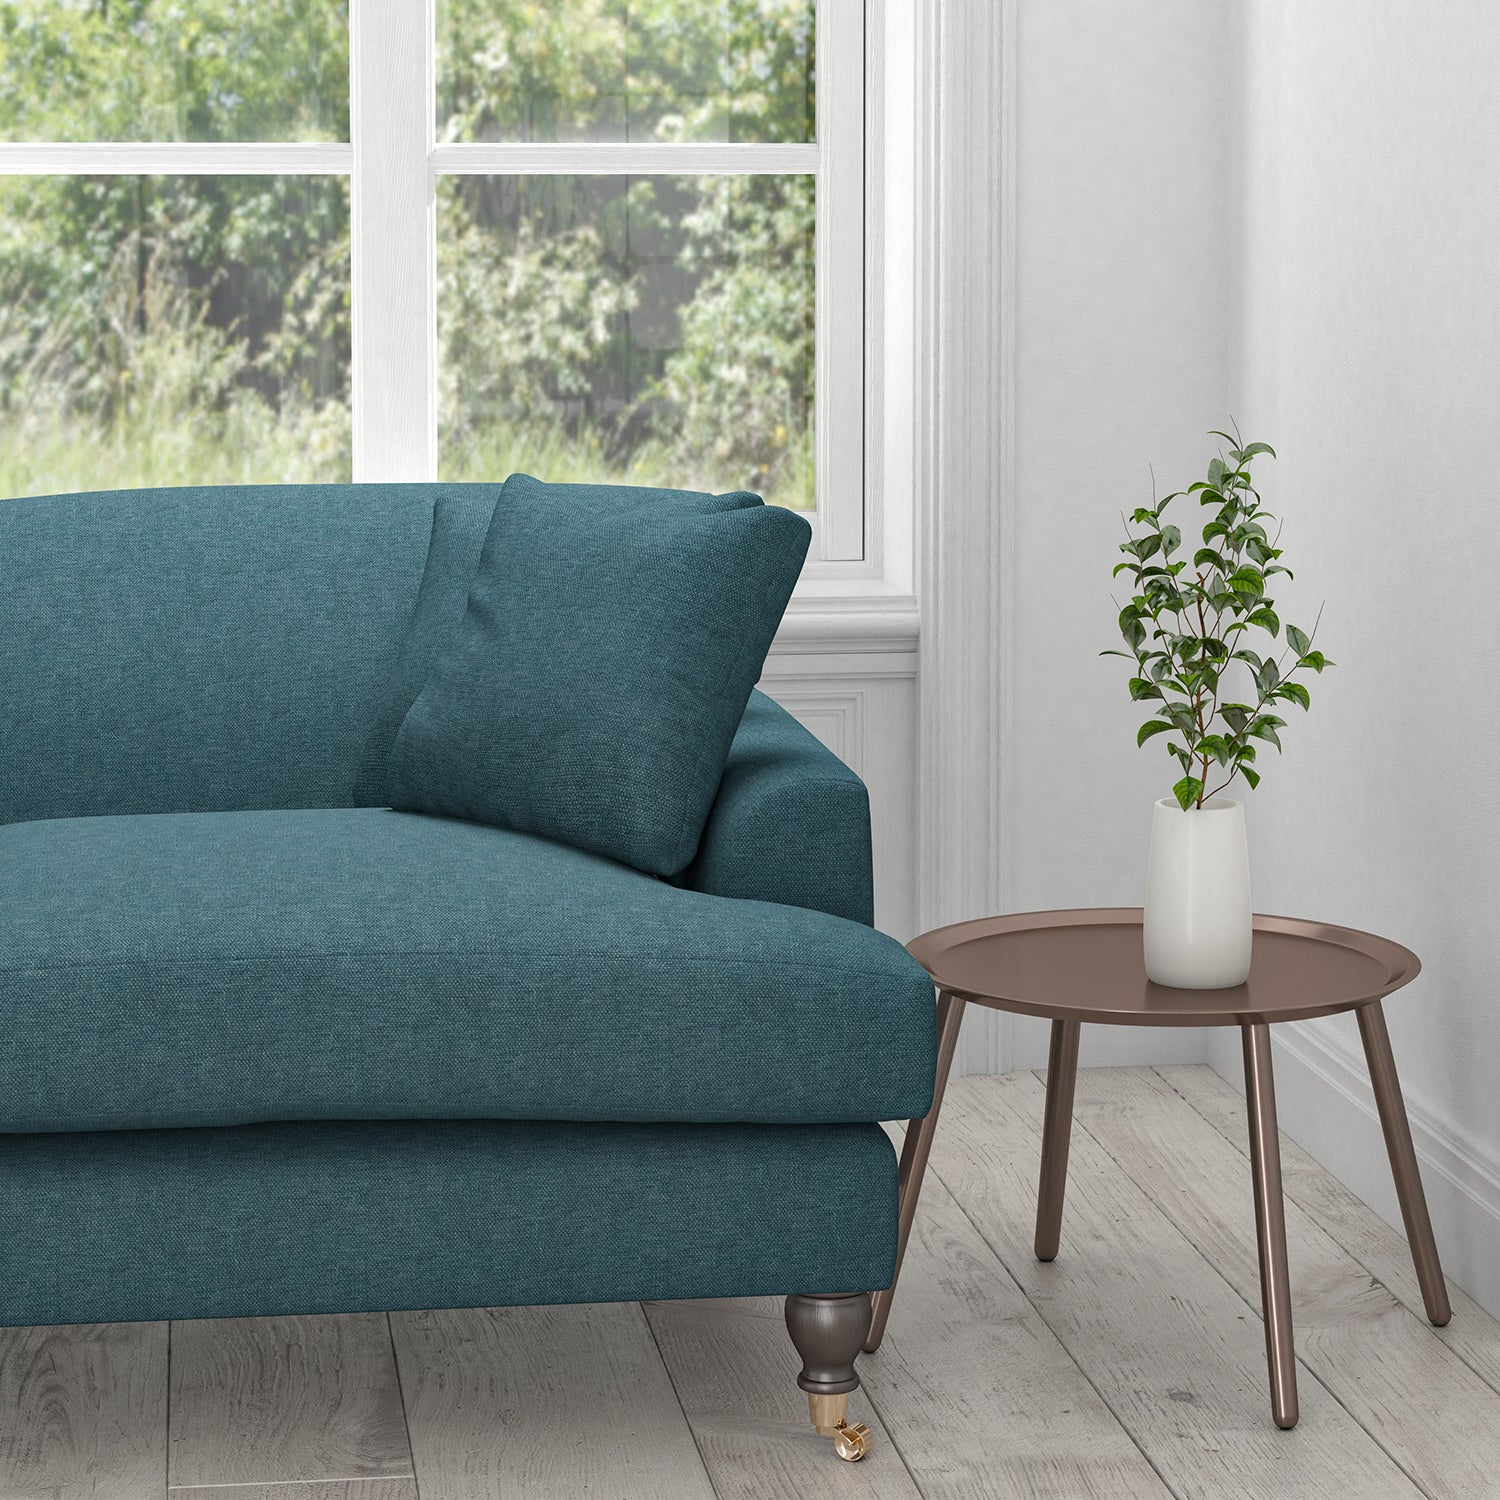 Sofa upholstered in a ocean blue plain cotton fabric